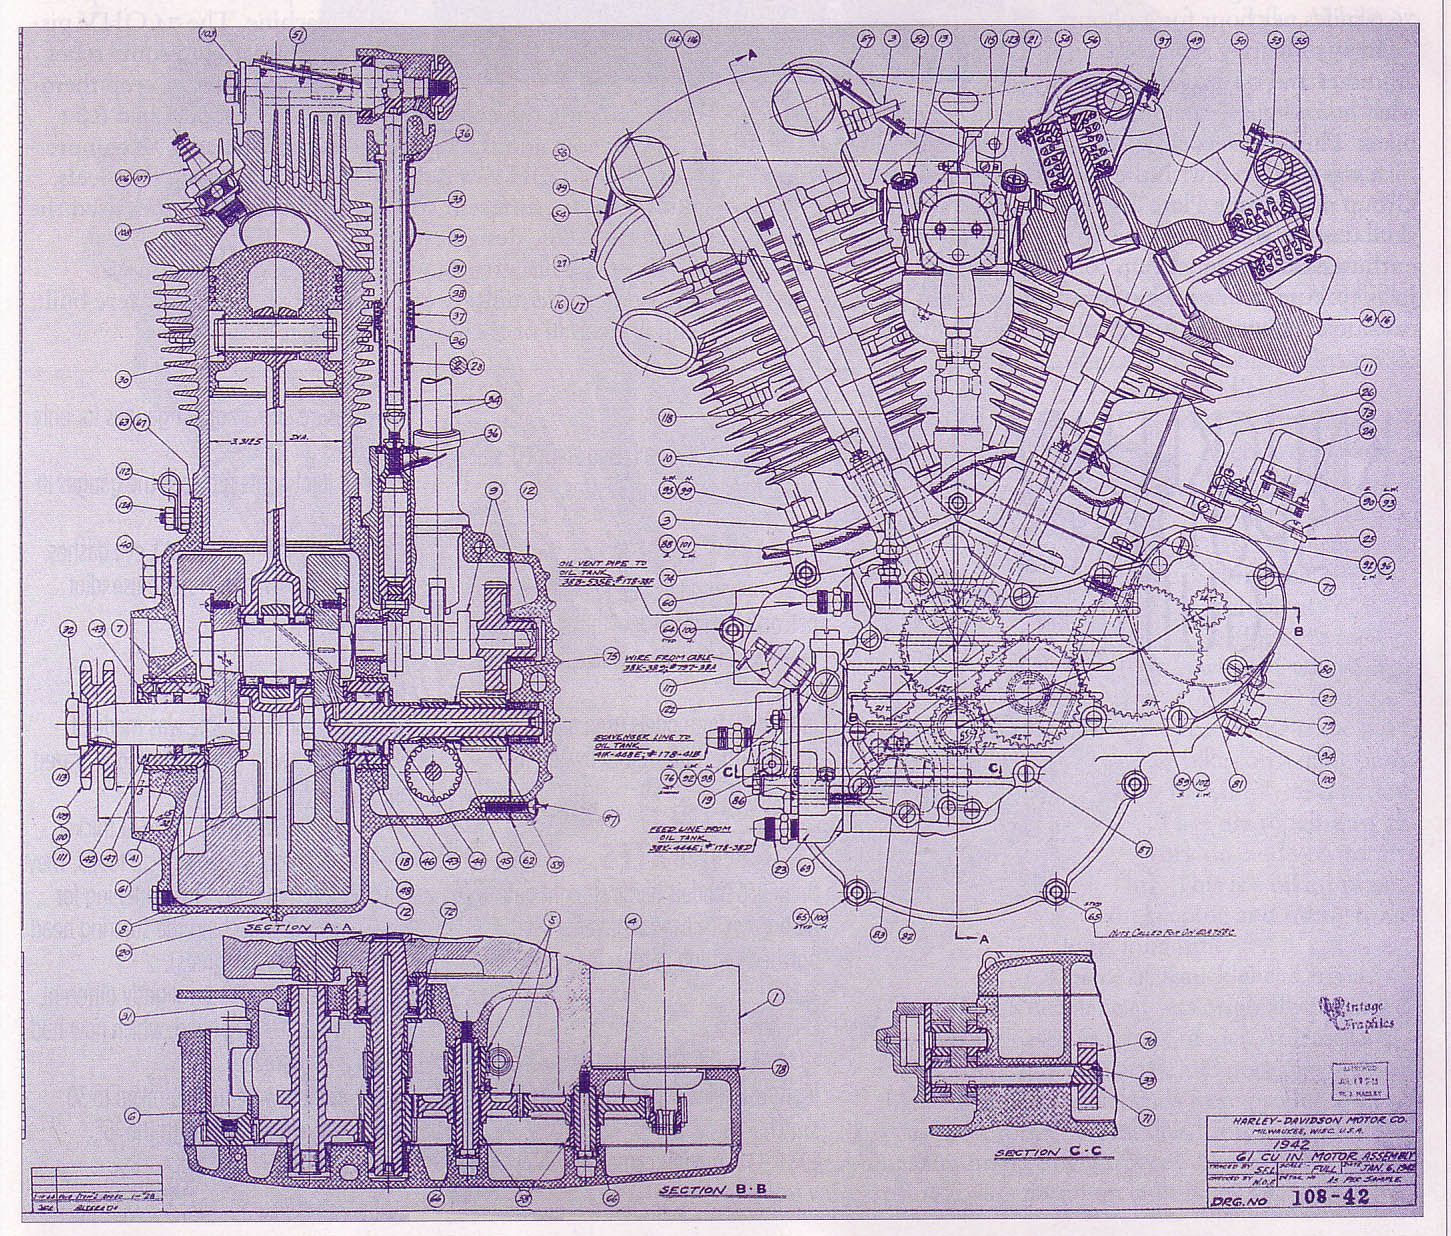 harley davidson blueprints - Google Search